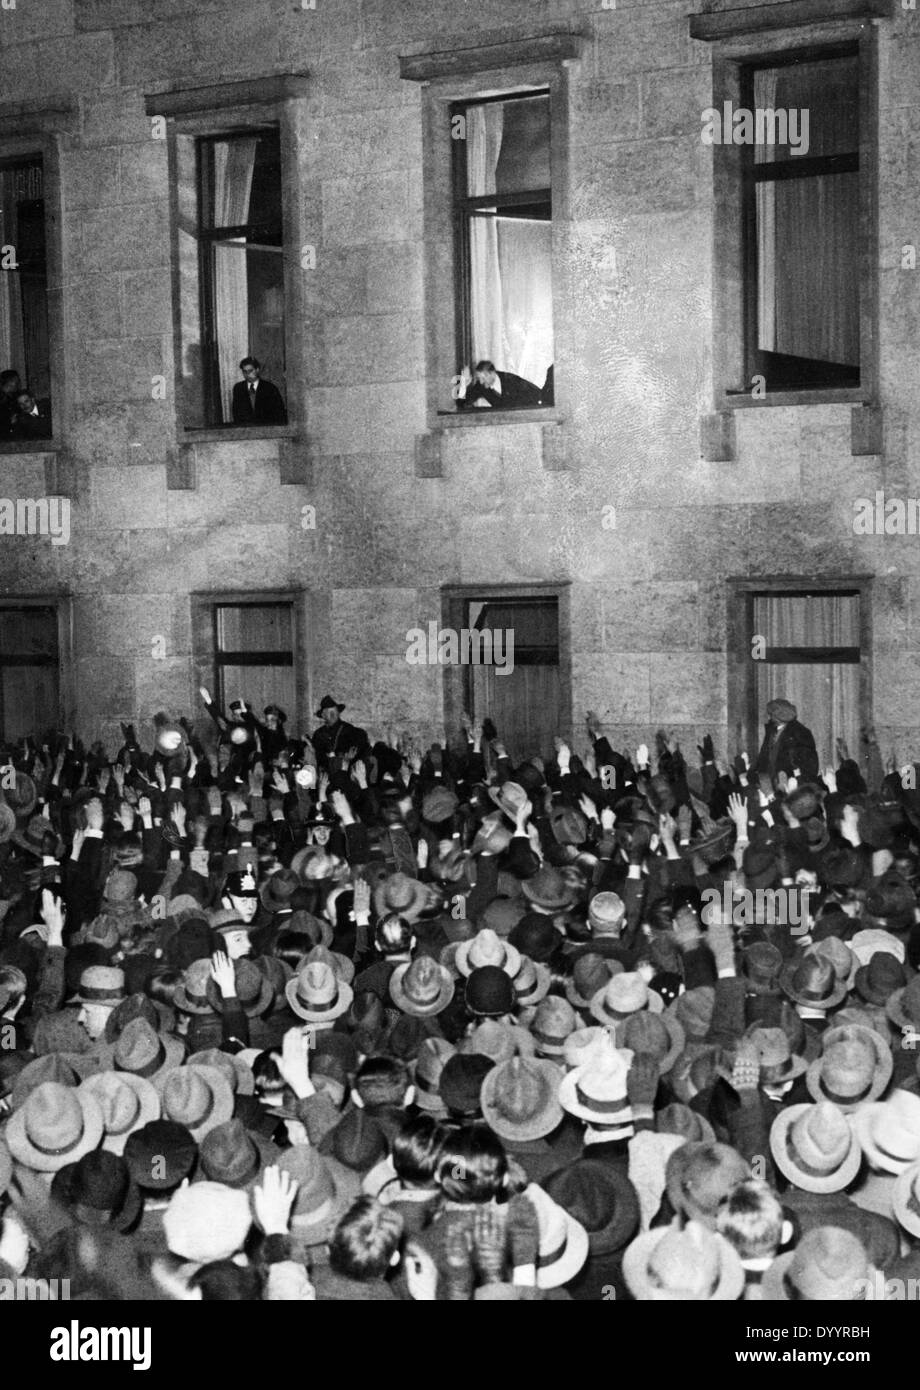 Torchlight procession in Berlin 30.01.1933 - Stock Image